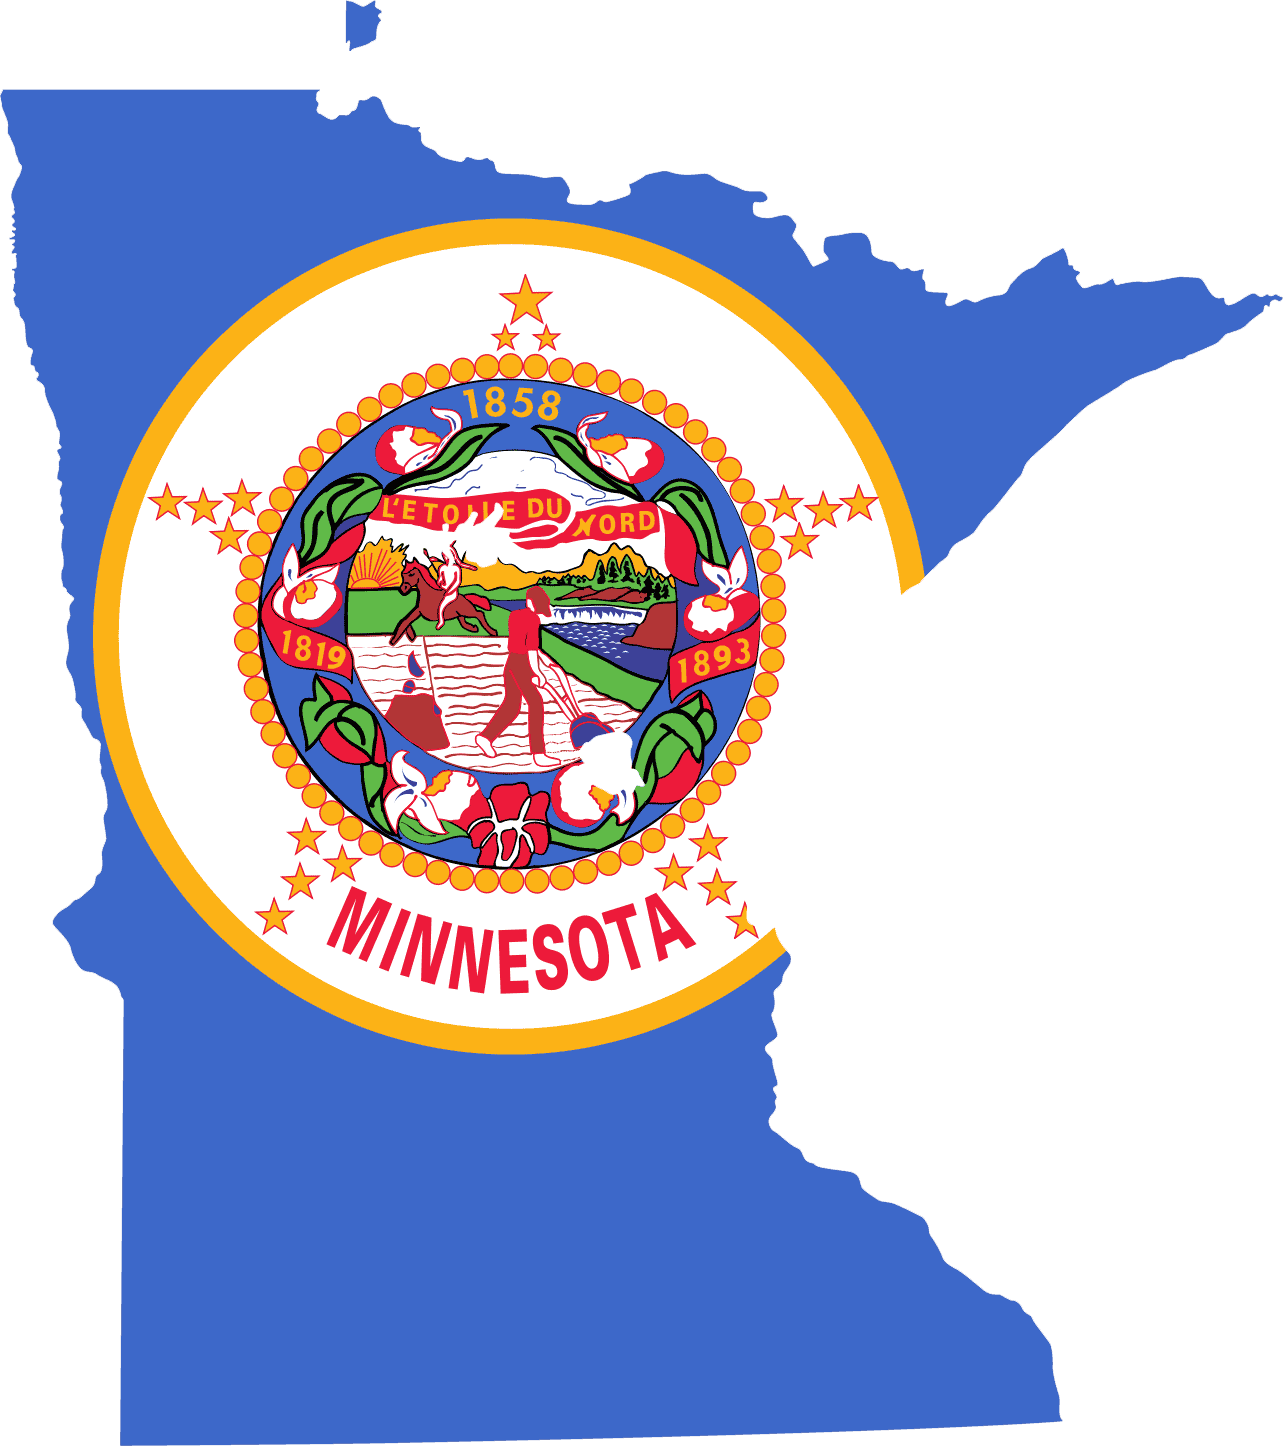 Minnesota Map Png.Minnesota Flag Map Mapsof Net